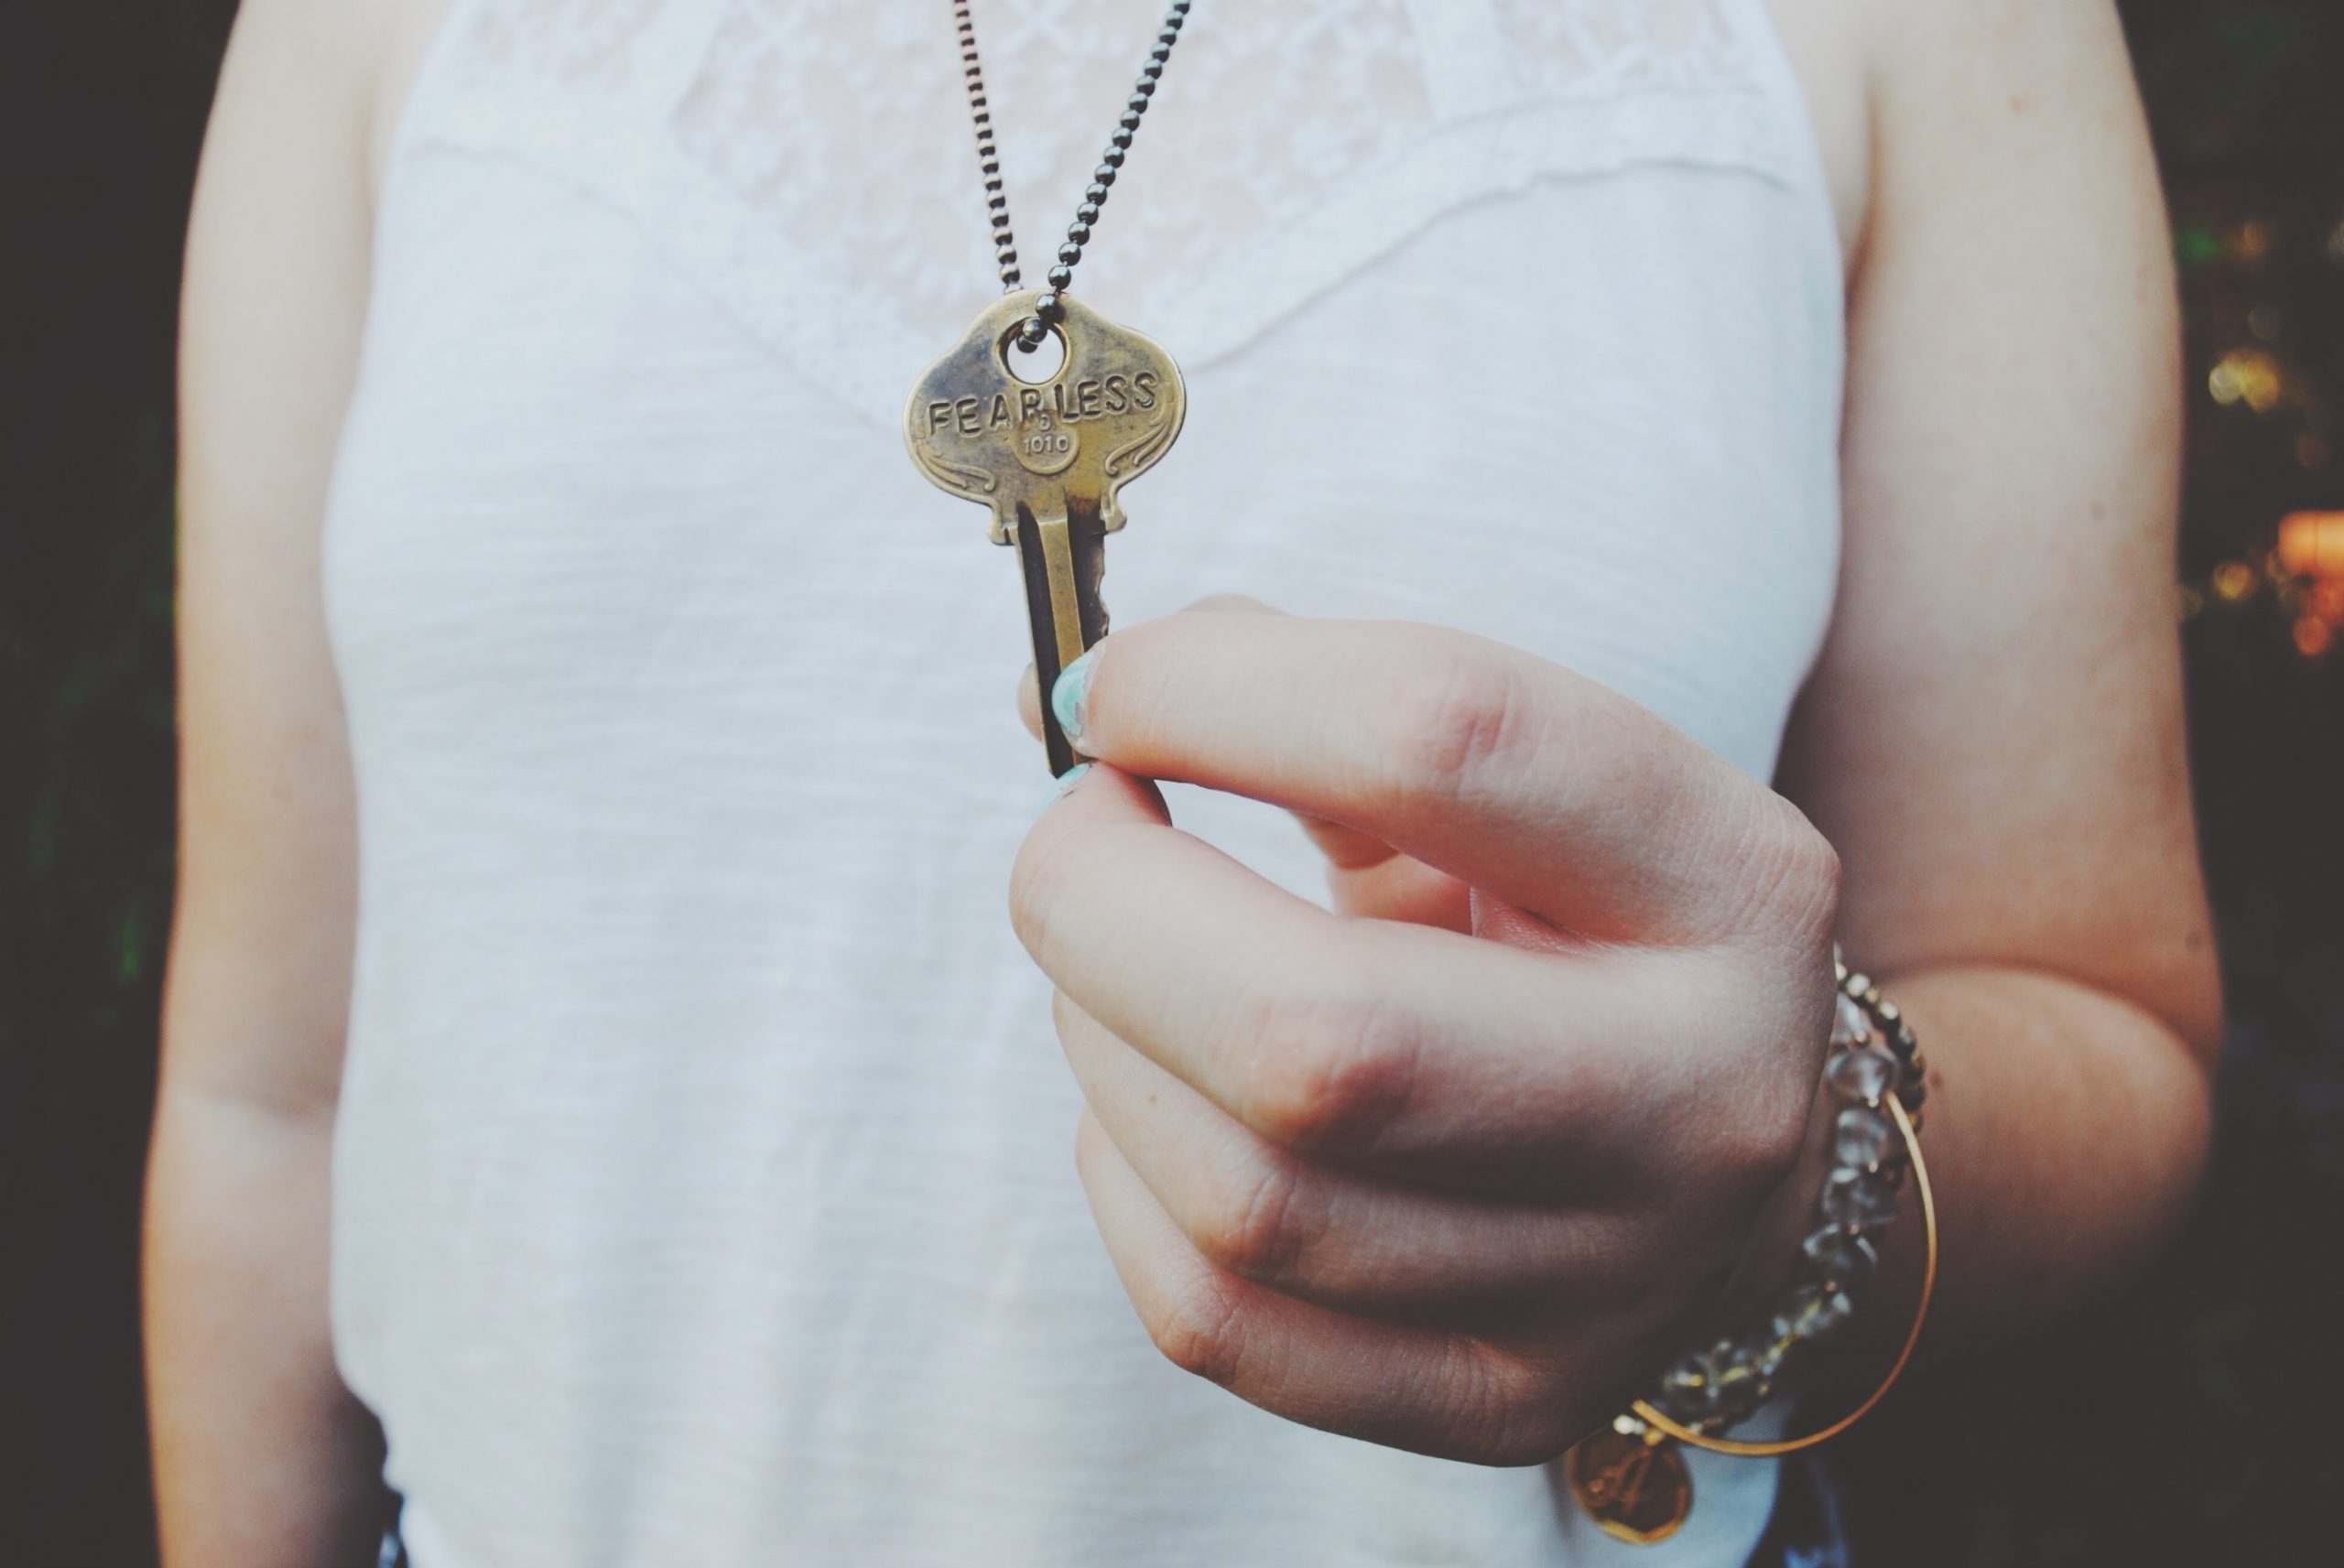 Fearless - A woman holding a key with the word fearless engraved